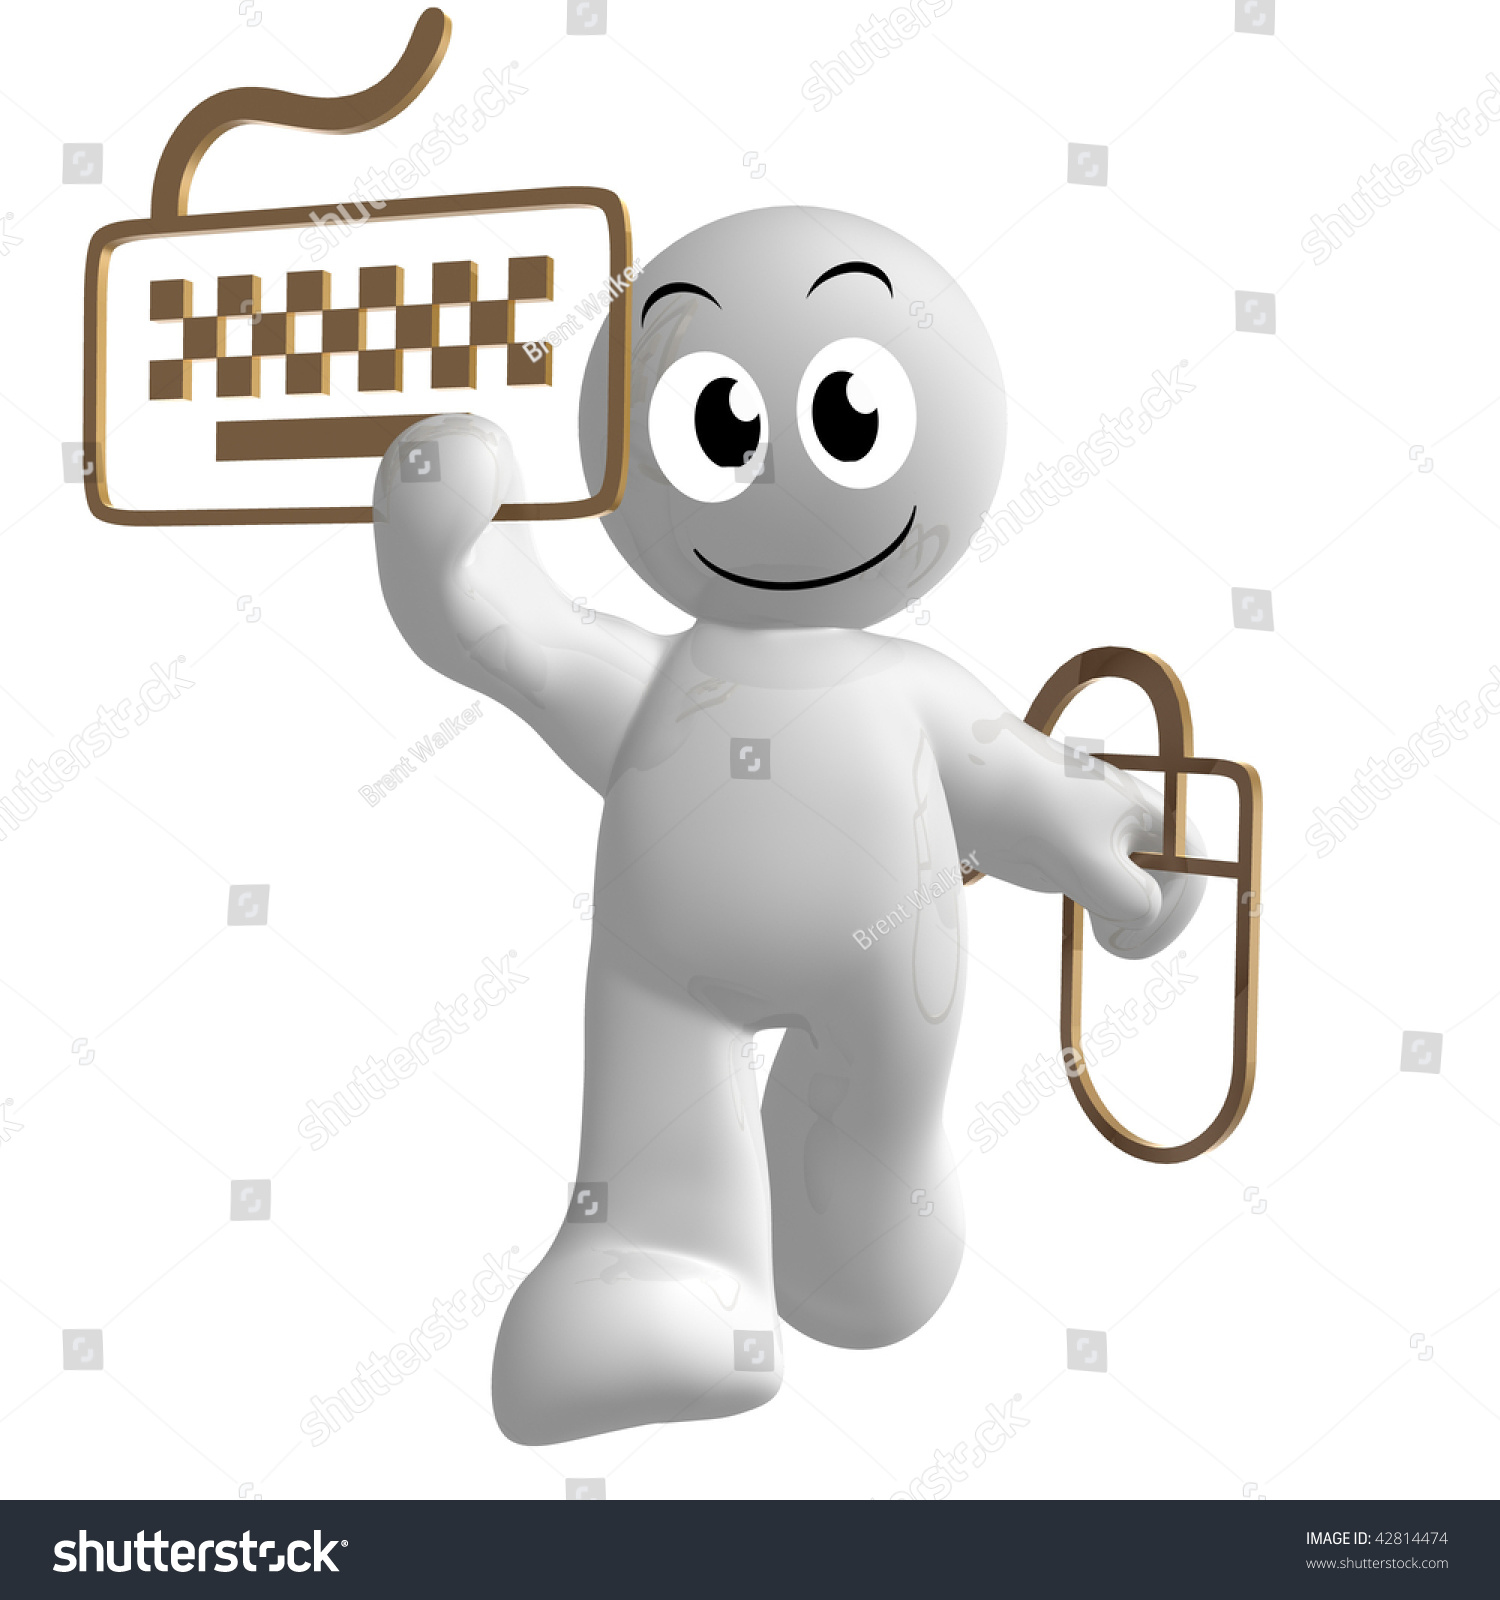 Funny 3d icon keyboard mouse symbol stock illustration 42814474 funny 3d icon with keyboard and mouse symbol buycottarizona Image collections